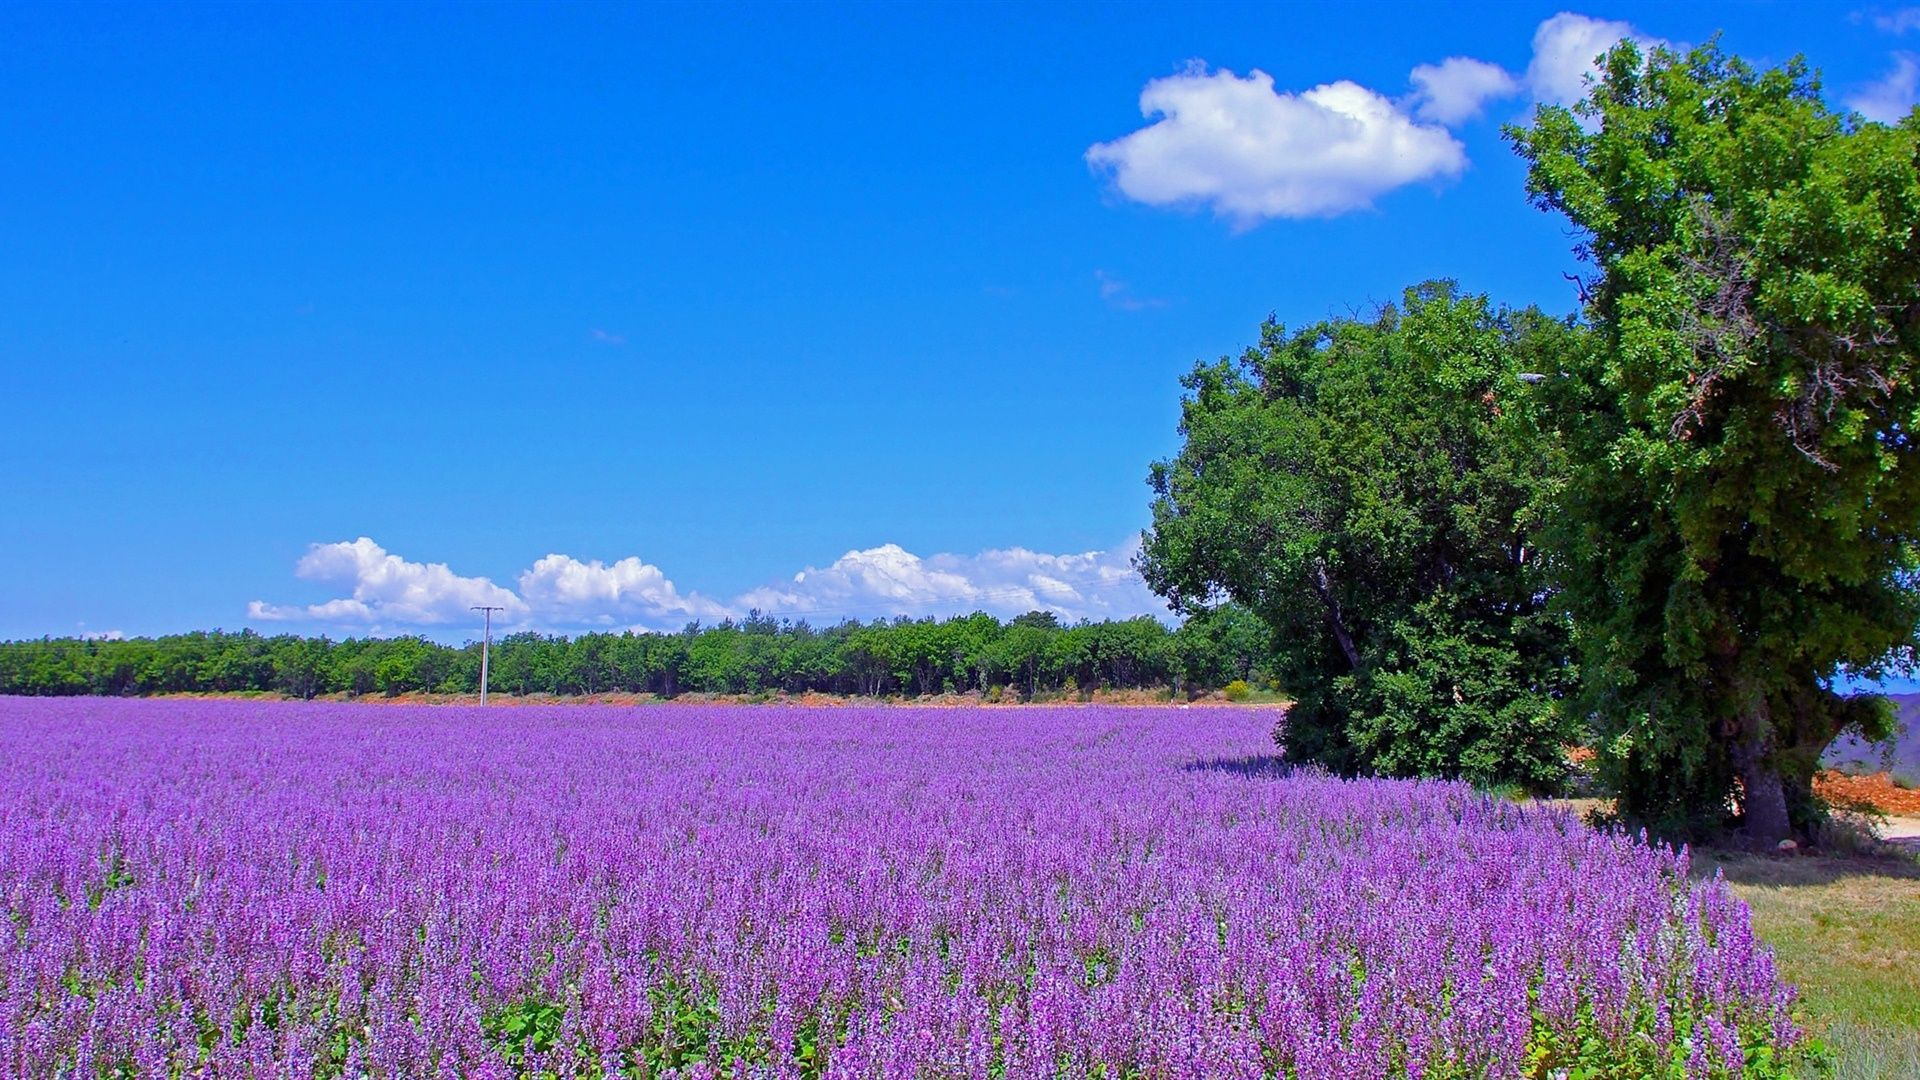 Lavender Field In France Photo